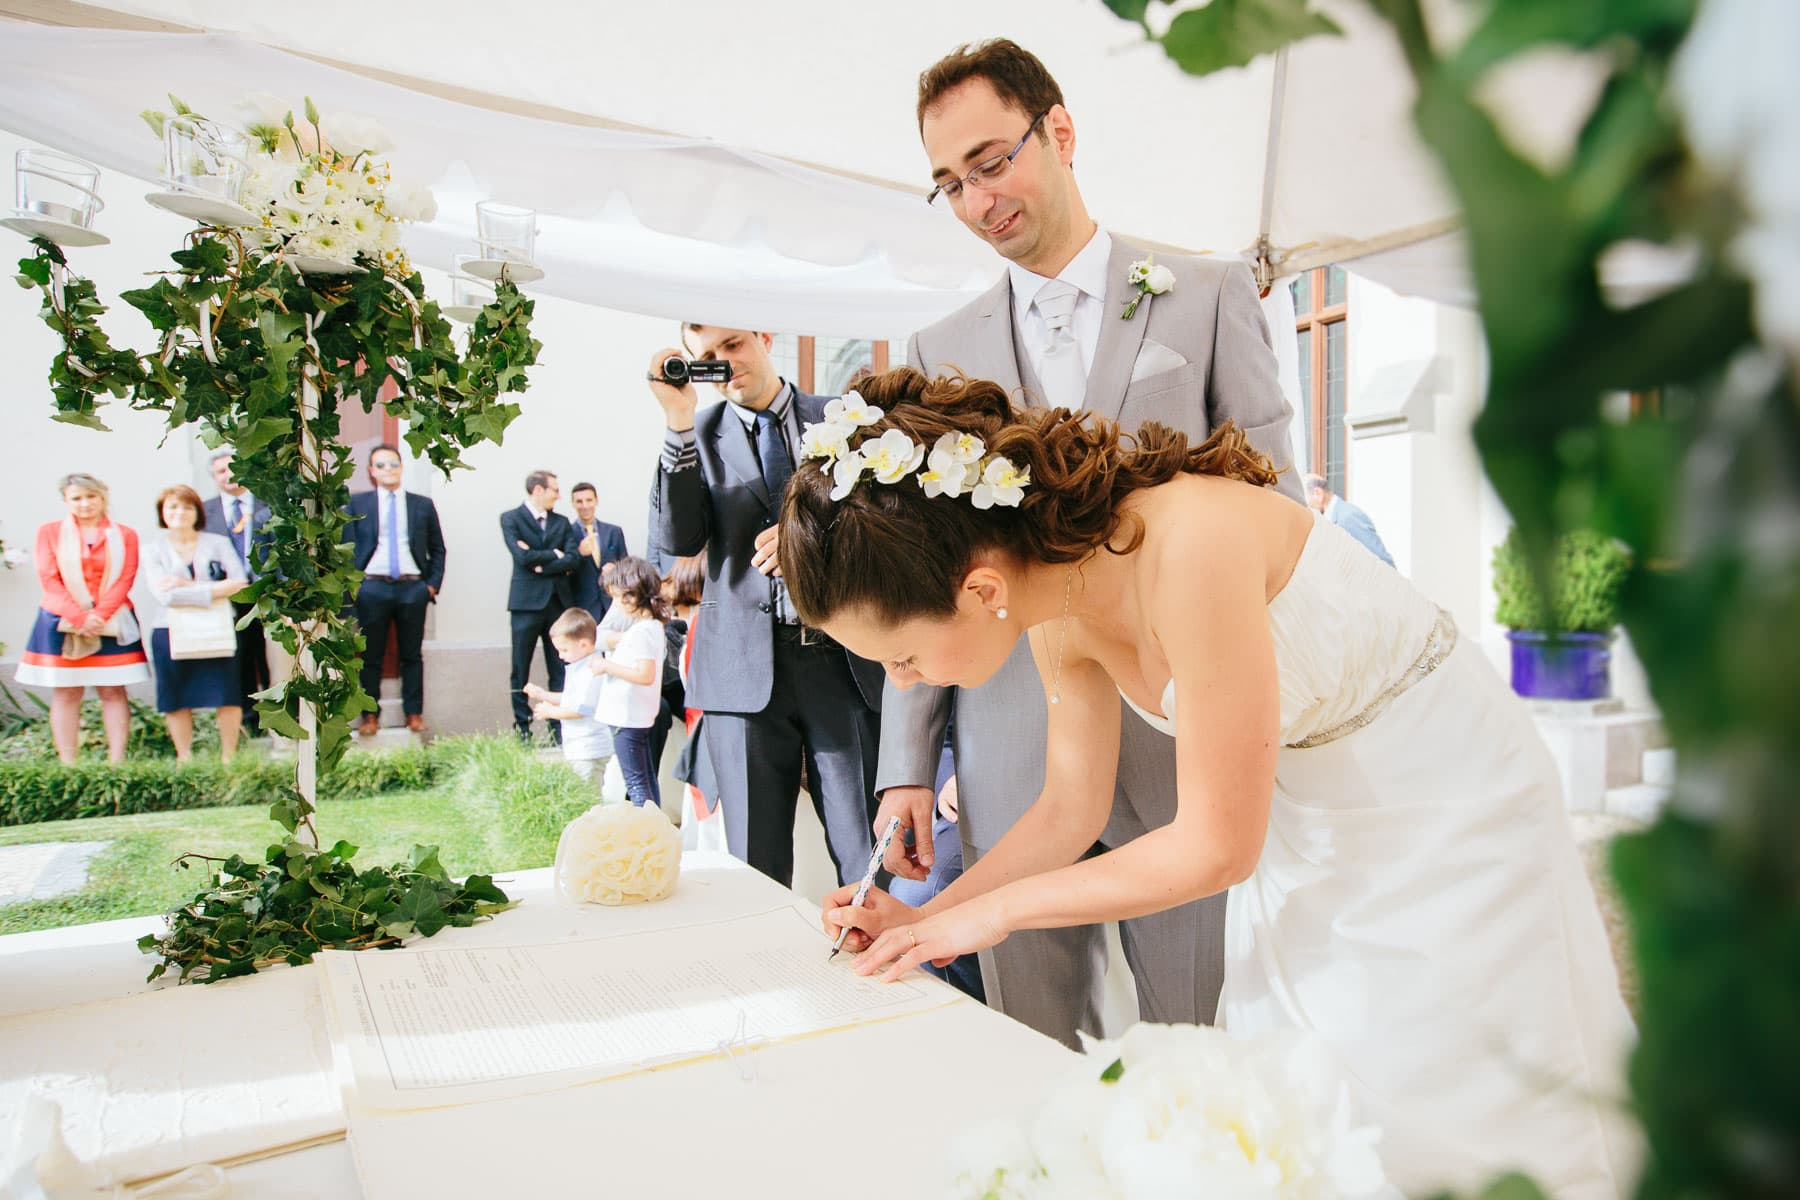 The bride signs the legal marriage documents as the groom watches in this destination wedding in Castello Dal Pozzo, Italy.